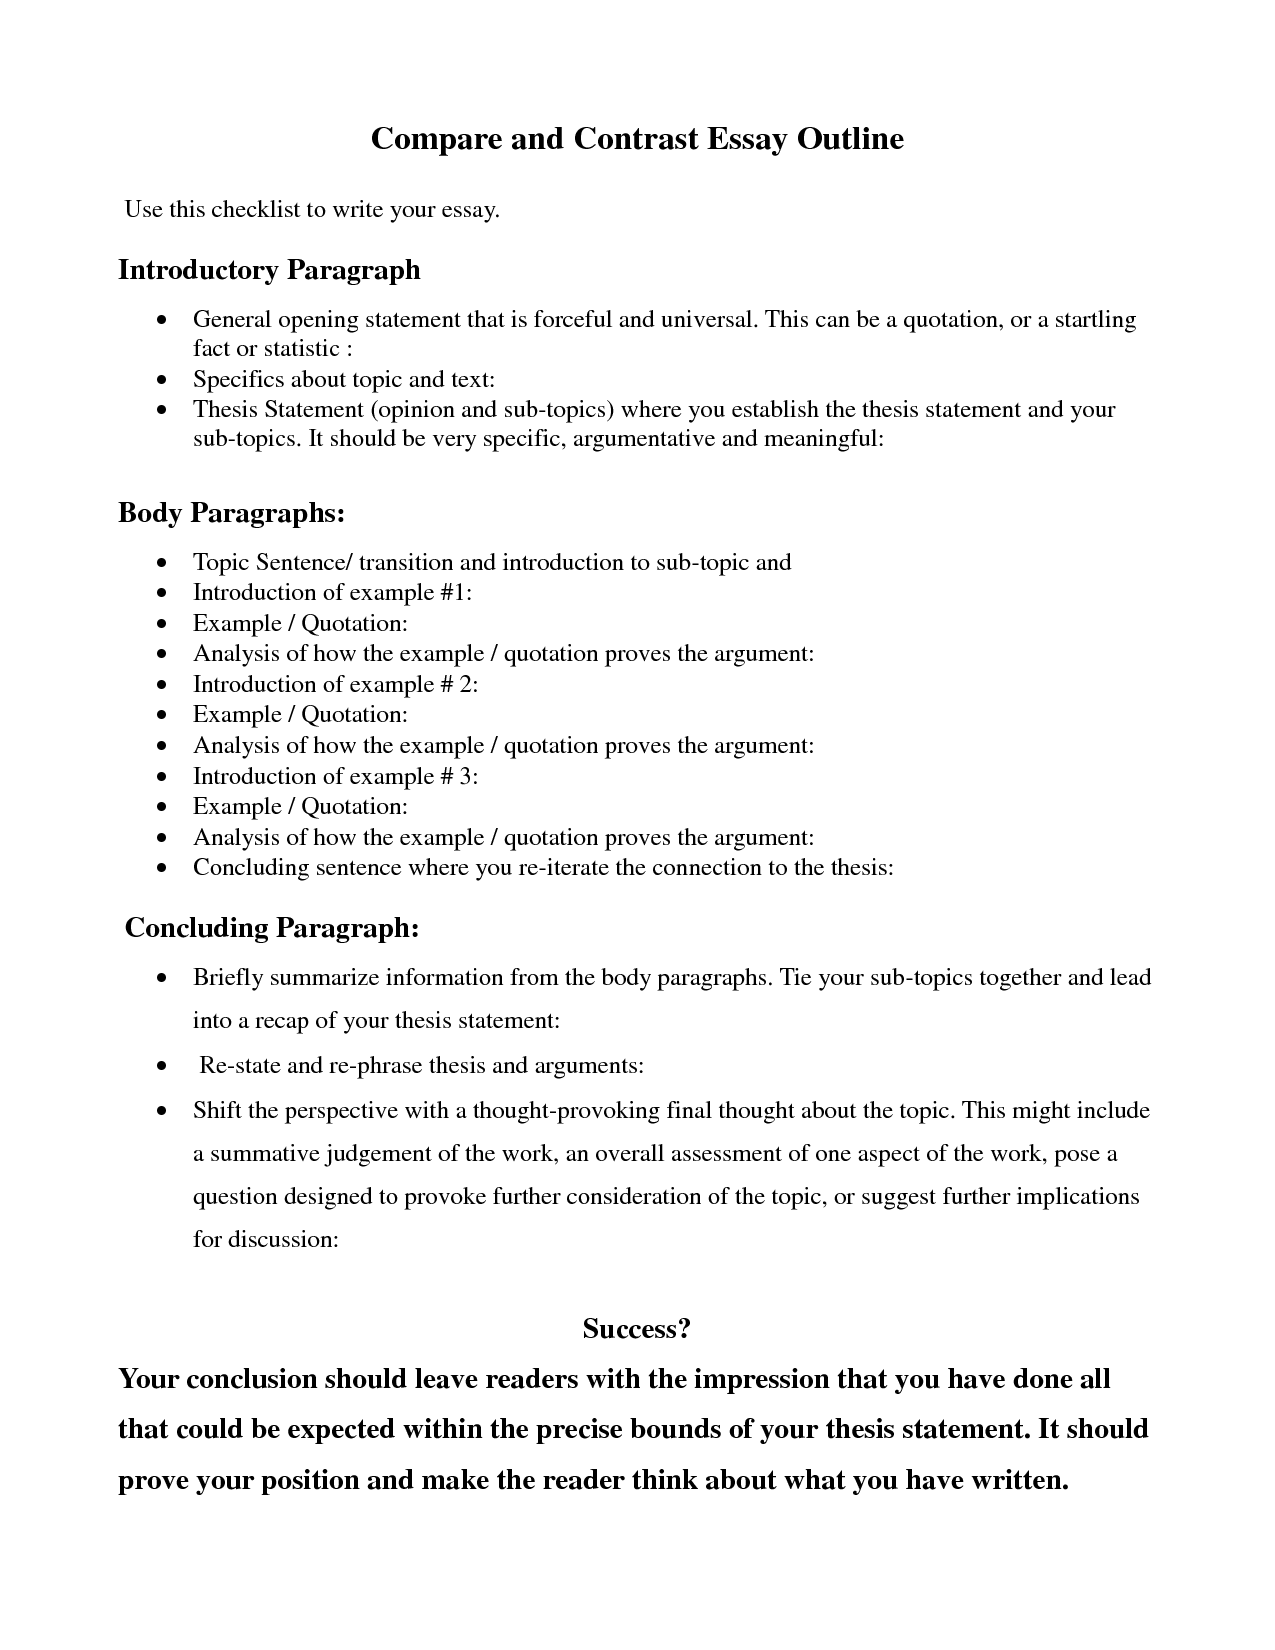 Comparecontrast Essay Outline  Google Search  Education  Thesis  Comparecontrast Essay Outline  Google Search Persuasive Essay Thesis Statement also Essays On Science And Technology  Personal Essay Examples High School